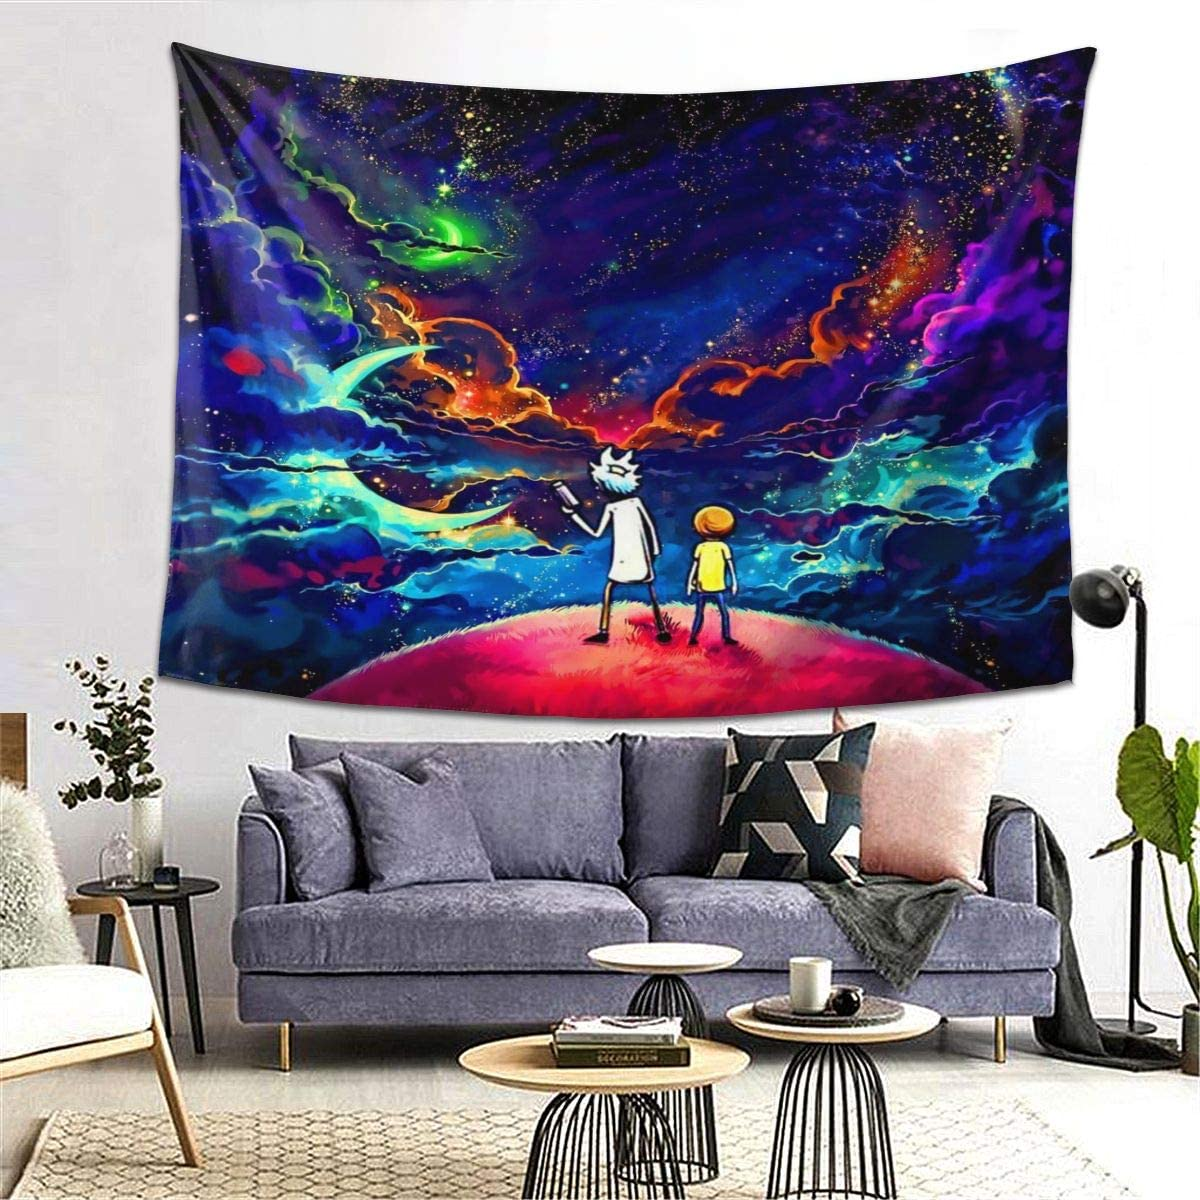 youme Fantasy Starry Sky Wall Hanging Tapestry Origal Design Wall Decor for Room Living Ri-ck Mor-ty 1, 82 x 59 inch